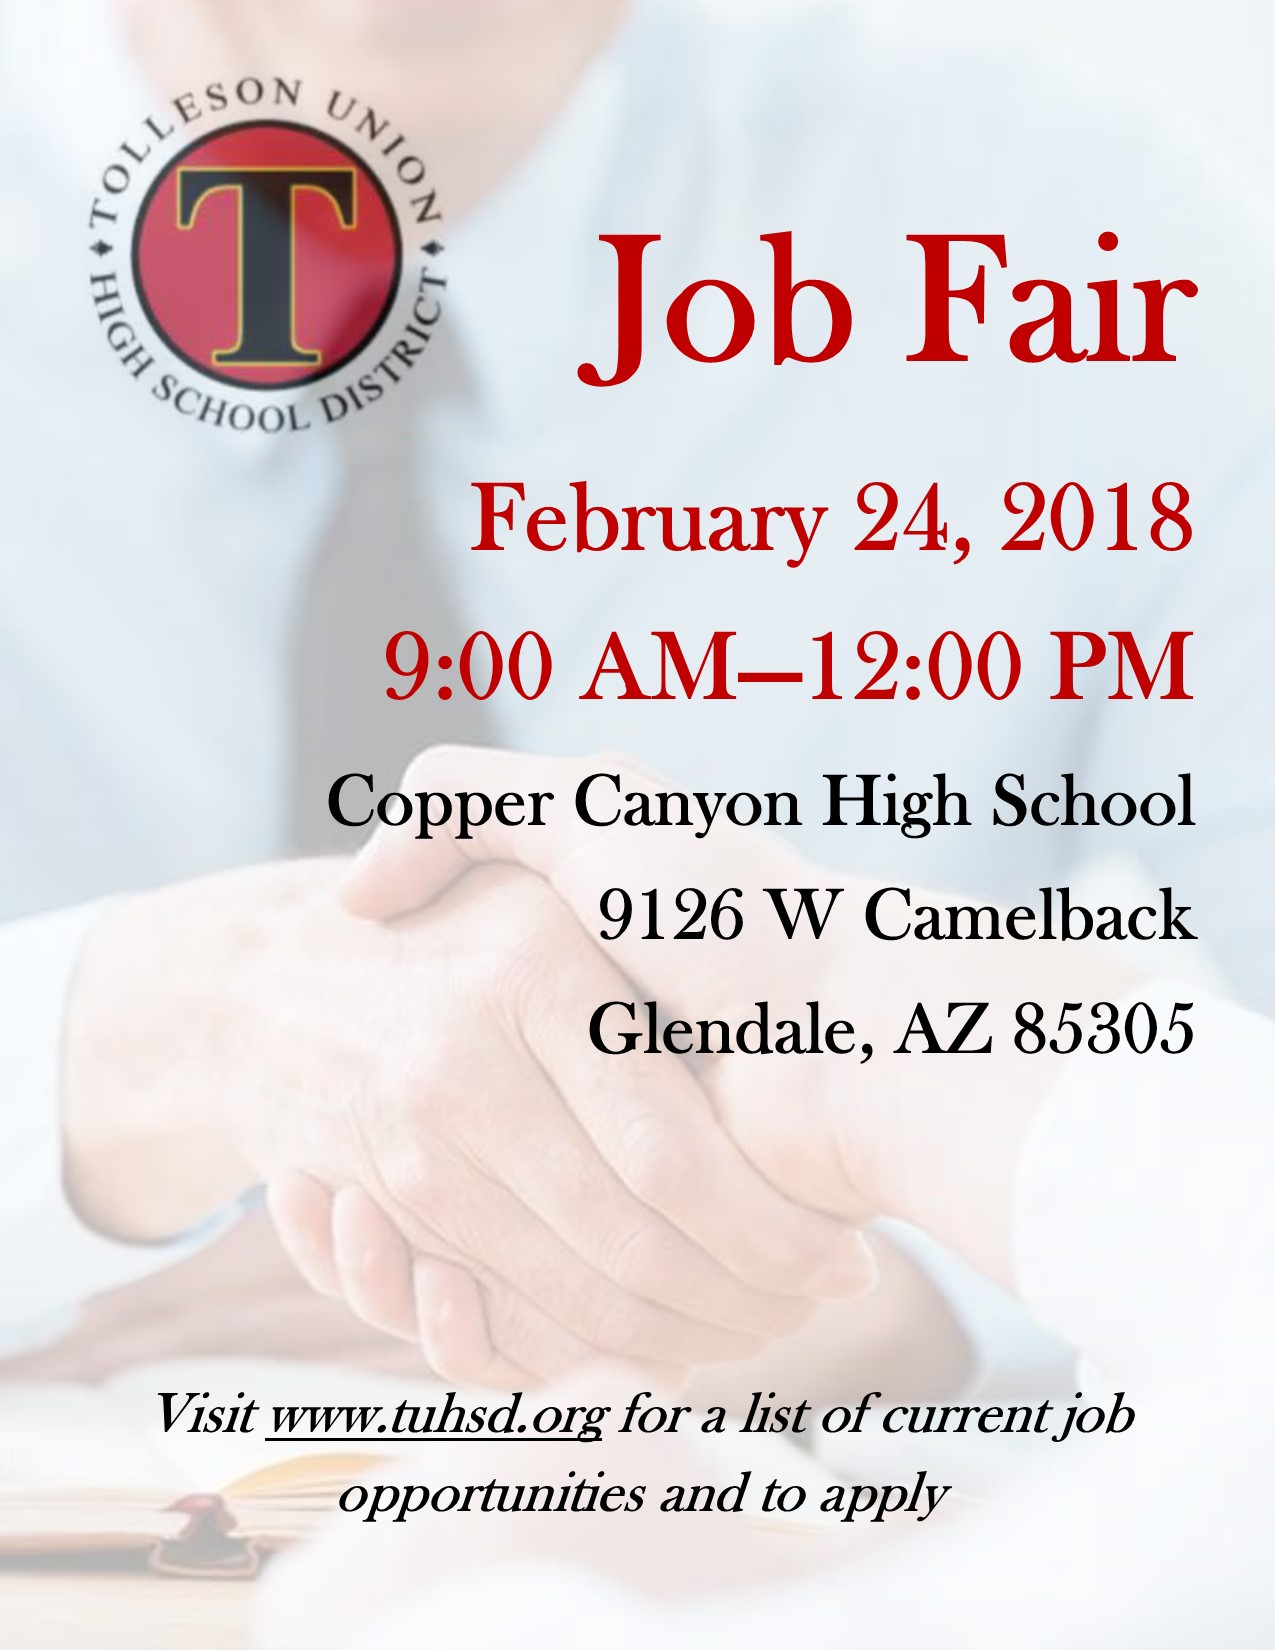 Tolleson Union High School District Job Fair. February 24, 2018. 9:00 am - 12:00 pm. Copper Canyon High School, 9126 W Camelback, Glendale, AZ 85305. Visit www.tuhsd.org for a list of current job opportunities and to apply.